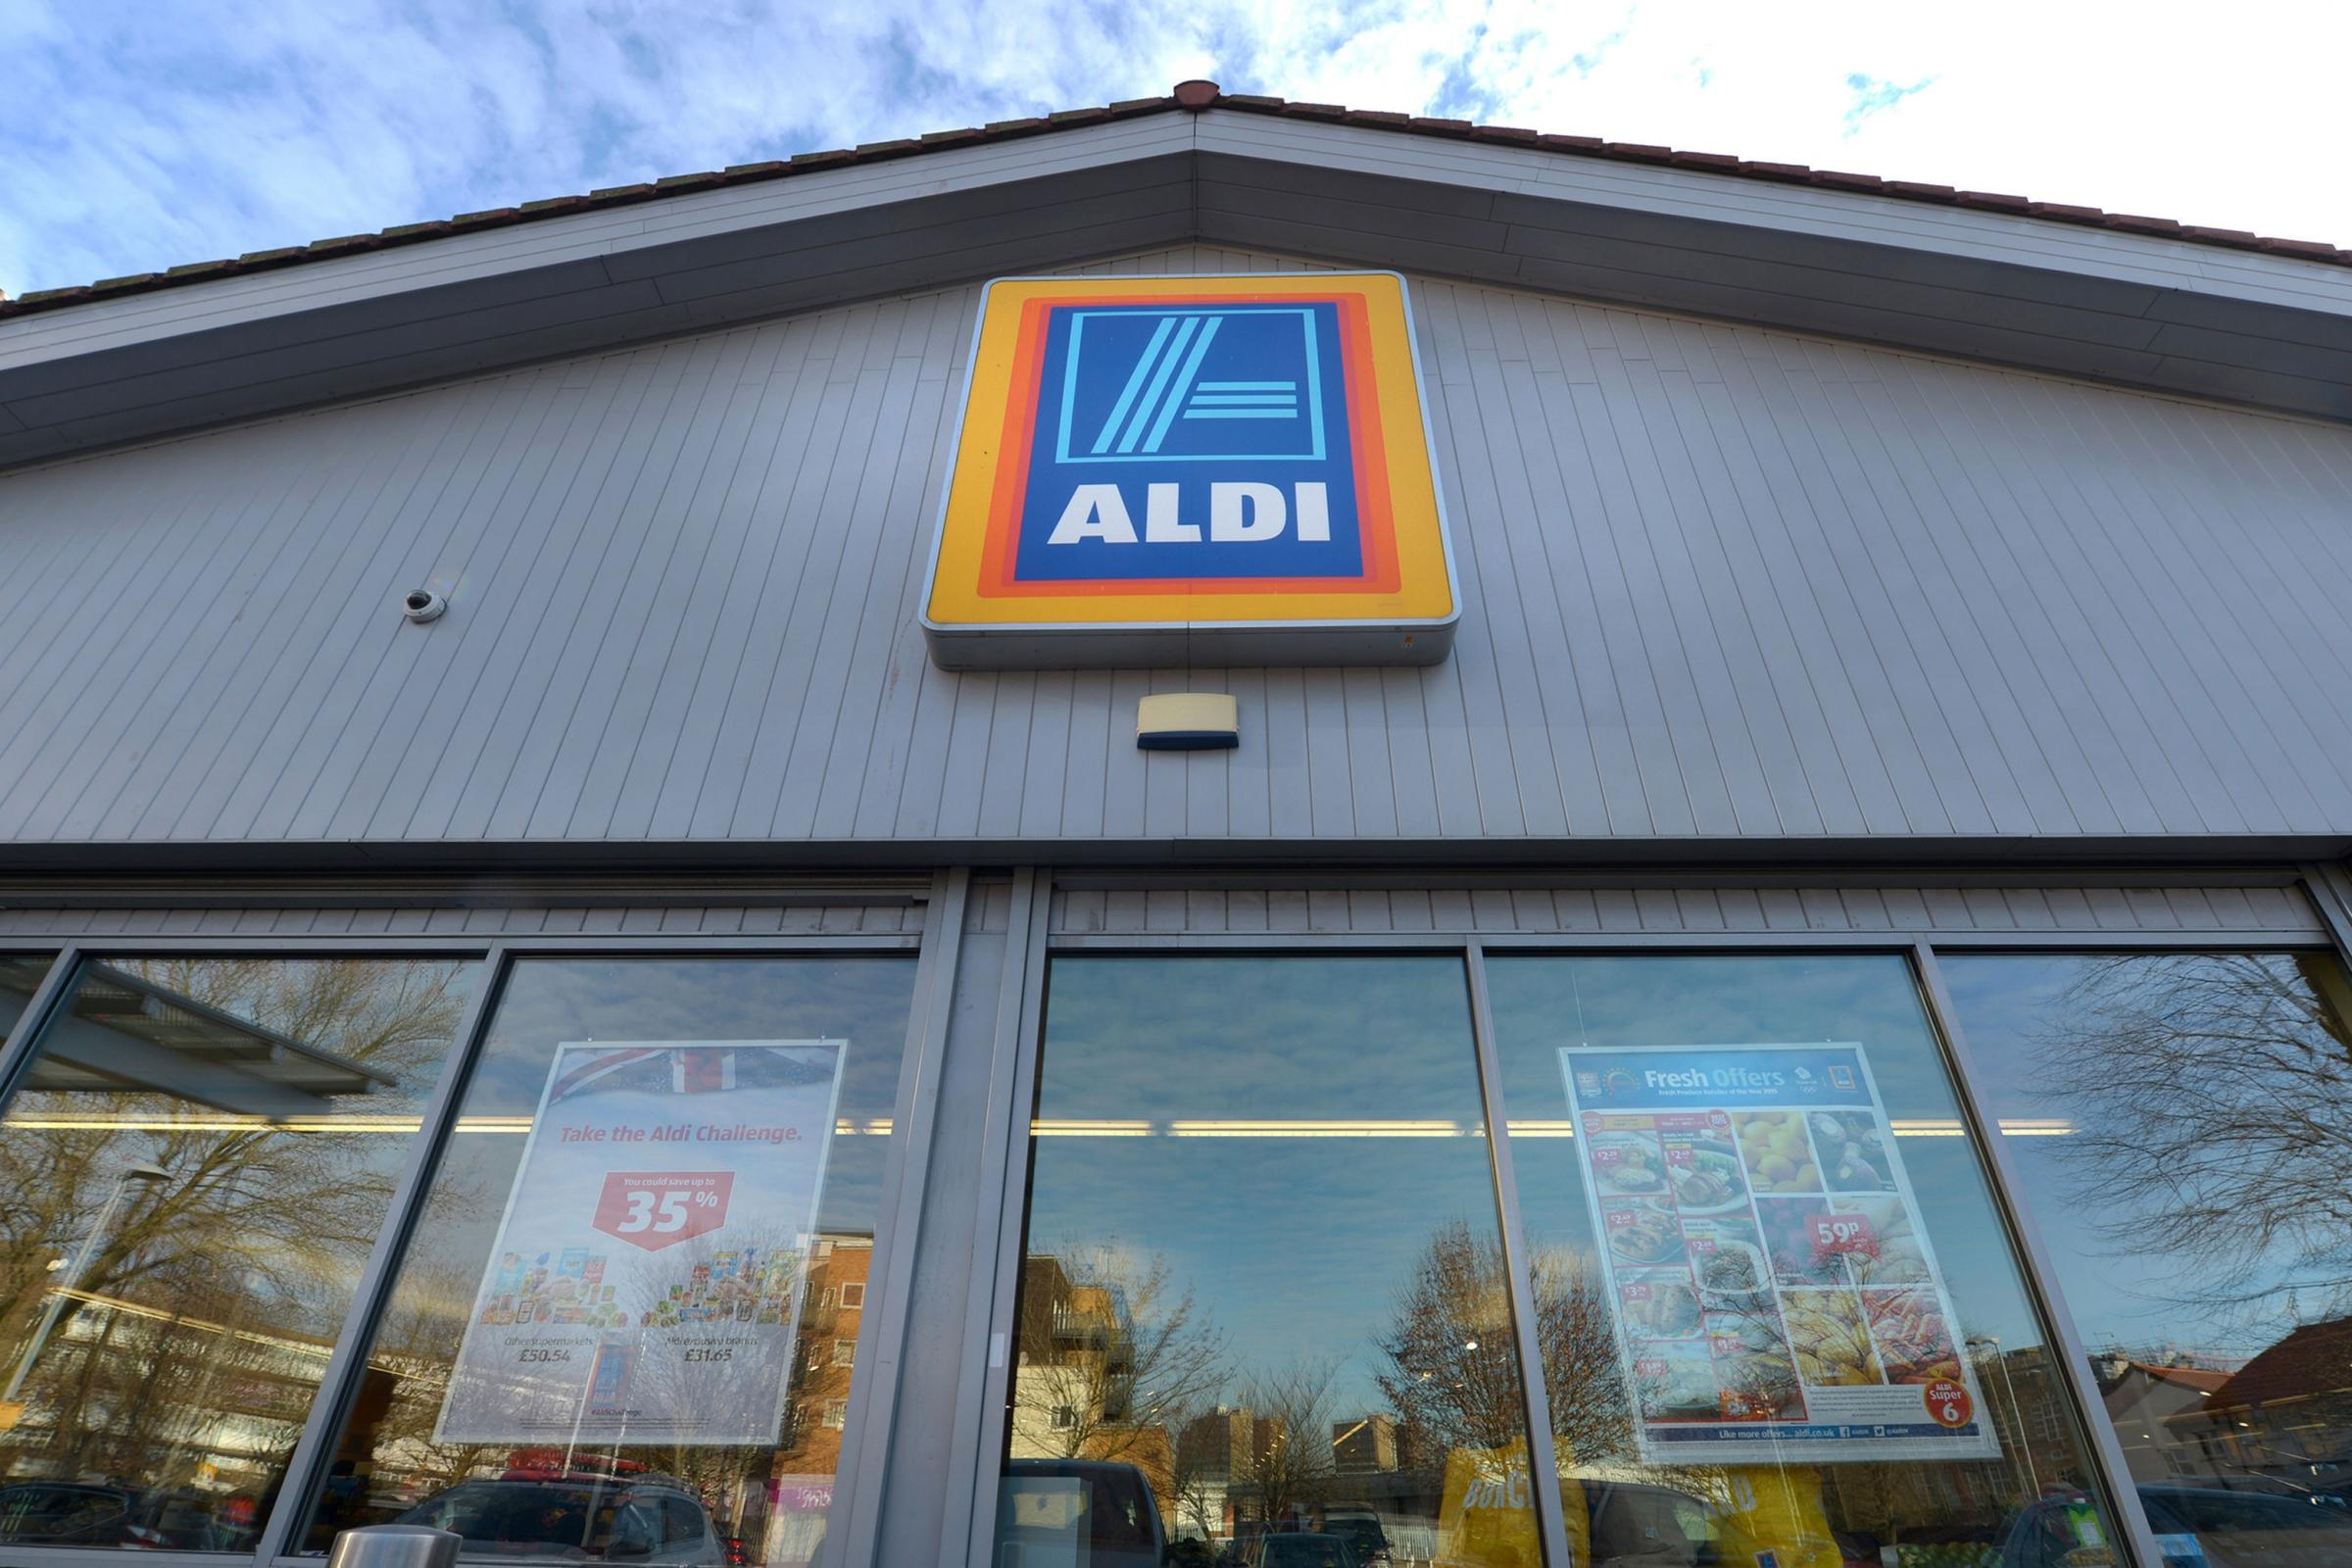 Aldi are actively looking at building stores in nine different south Essex locations